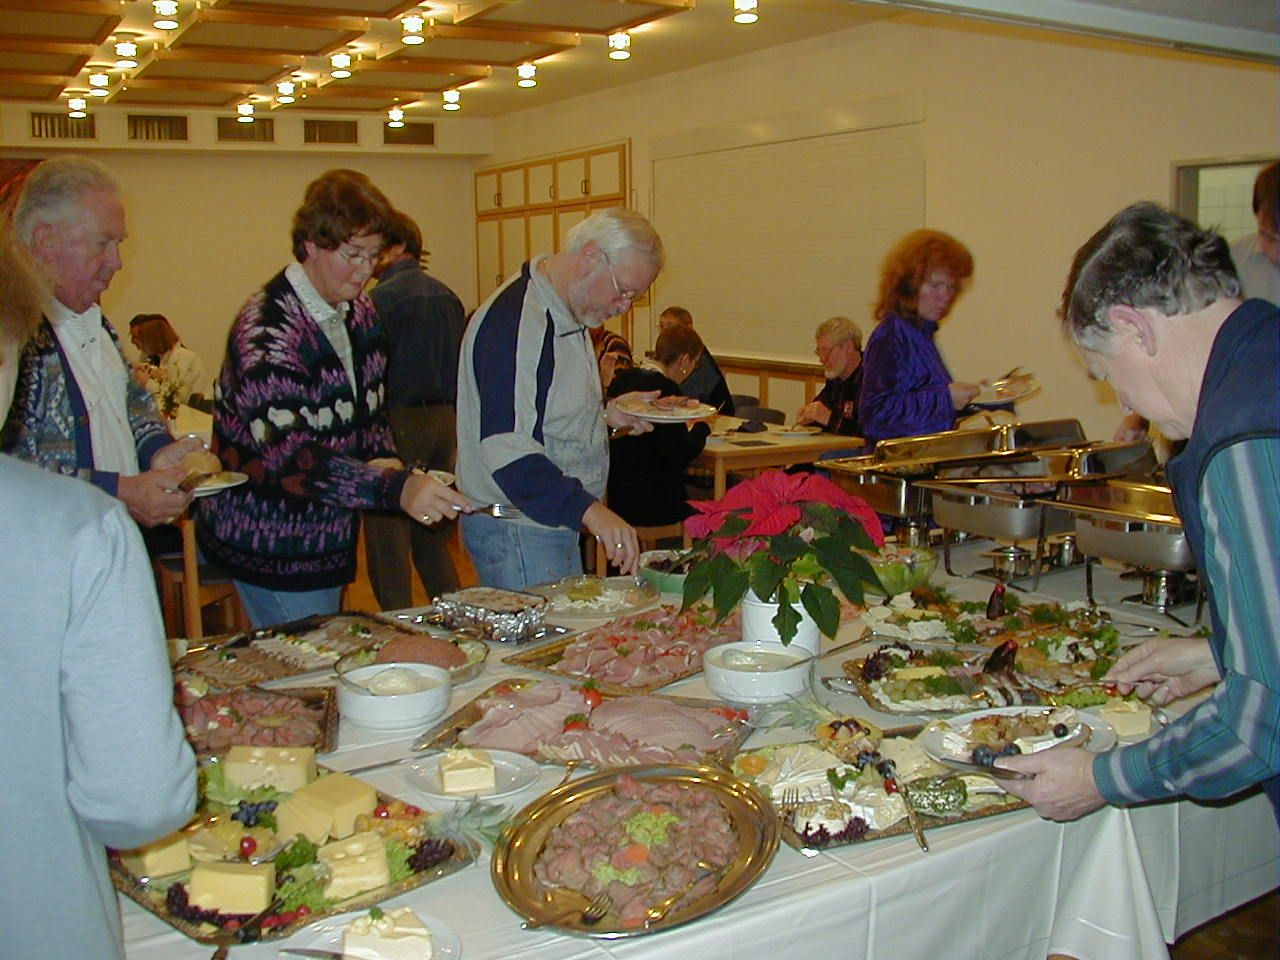 How to plan a dinner for a large crowd | Cooking for a crowd, Food for a crowd, Christmas dinner ...